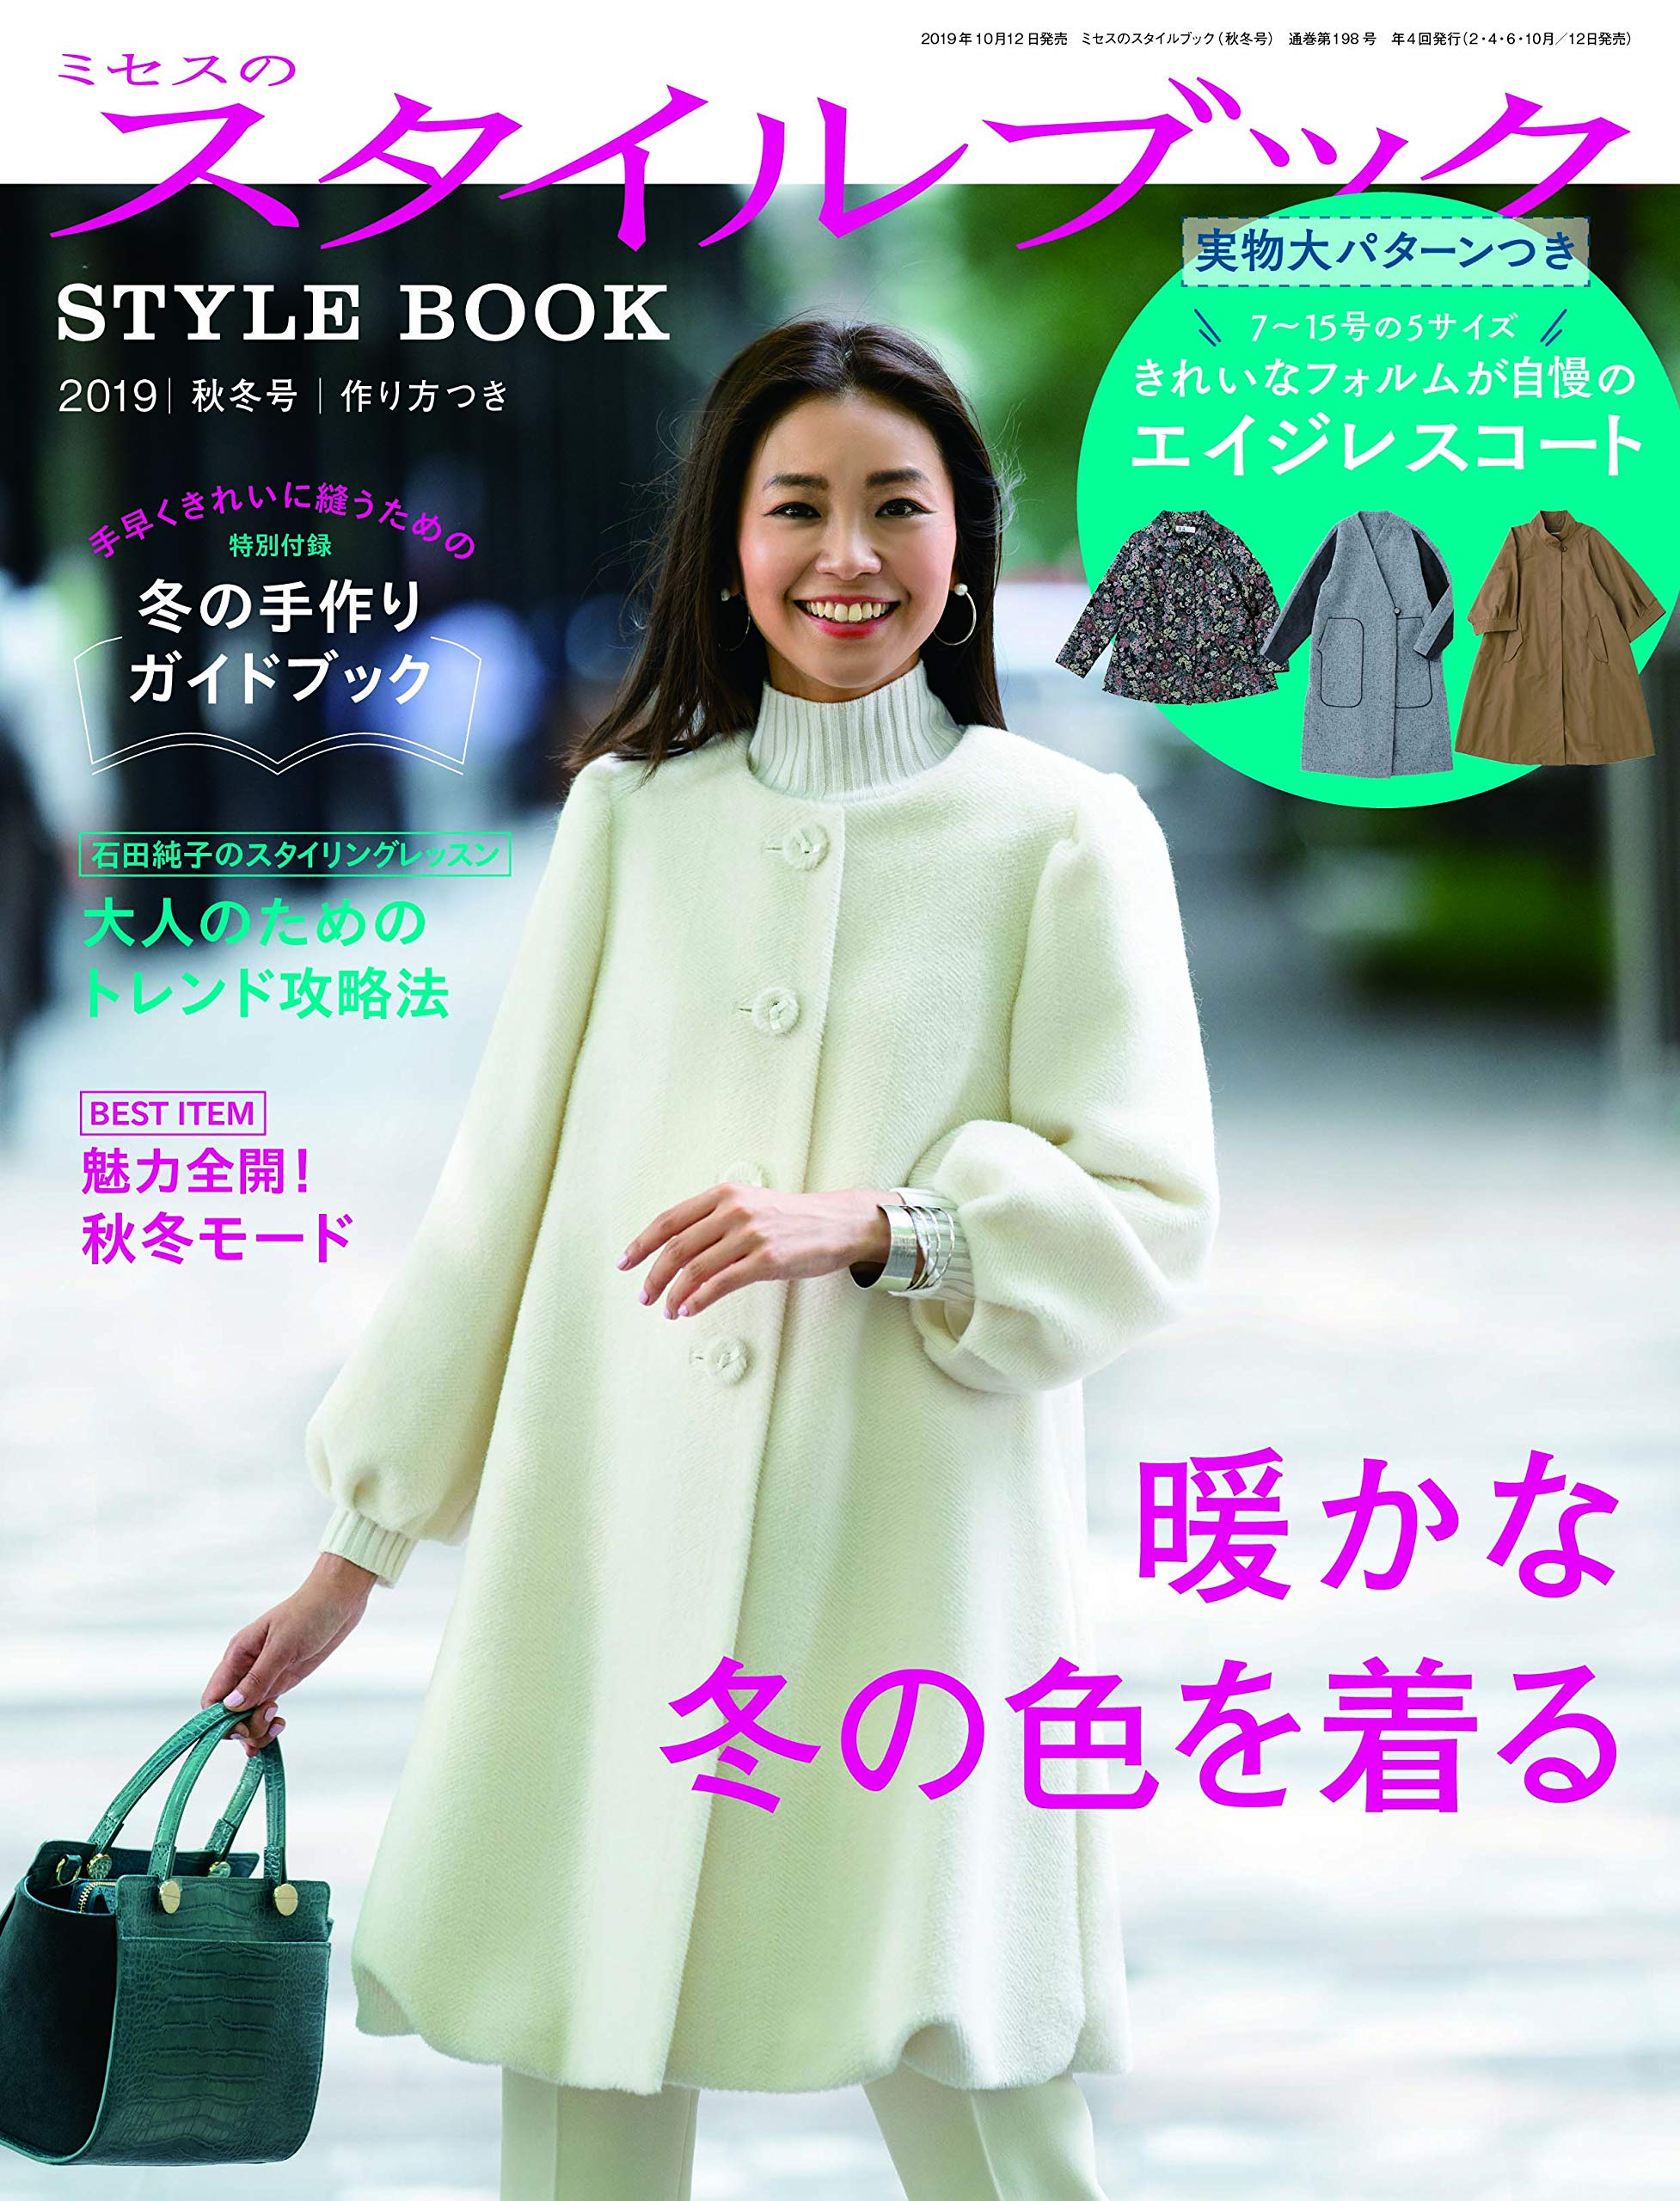 Mrs Style Book Fall/Winter 2019